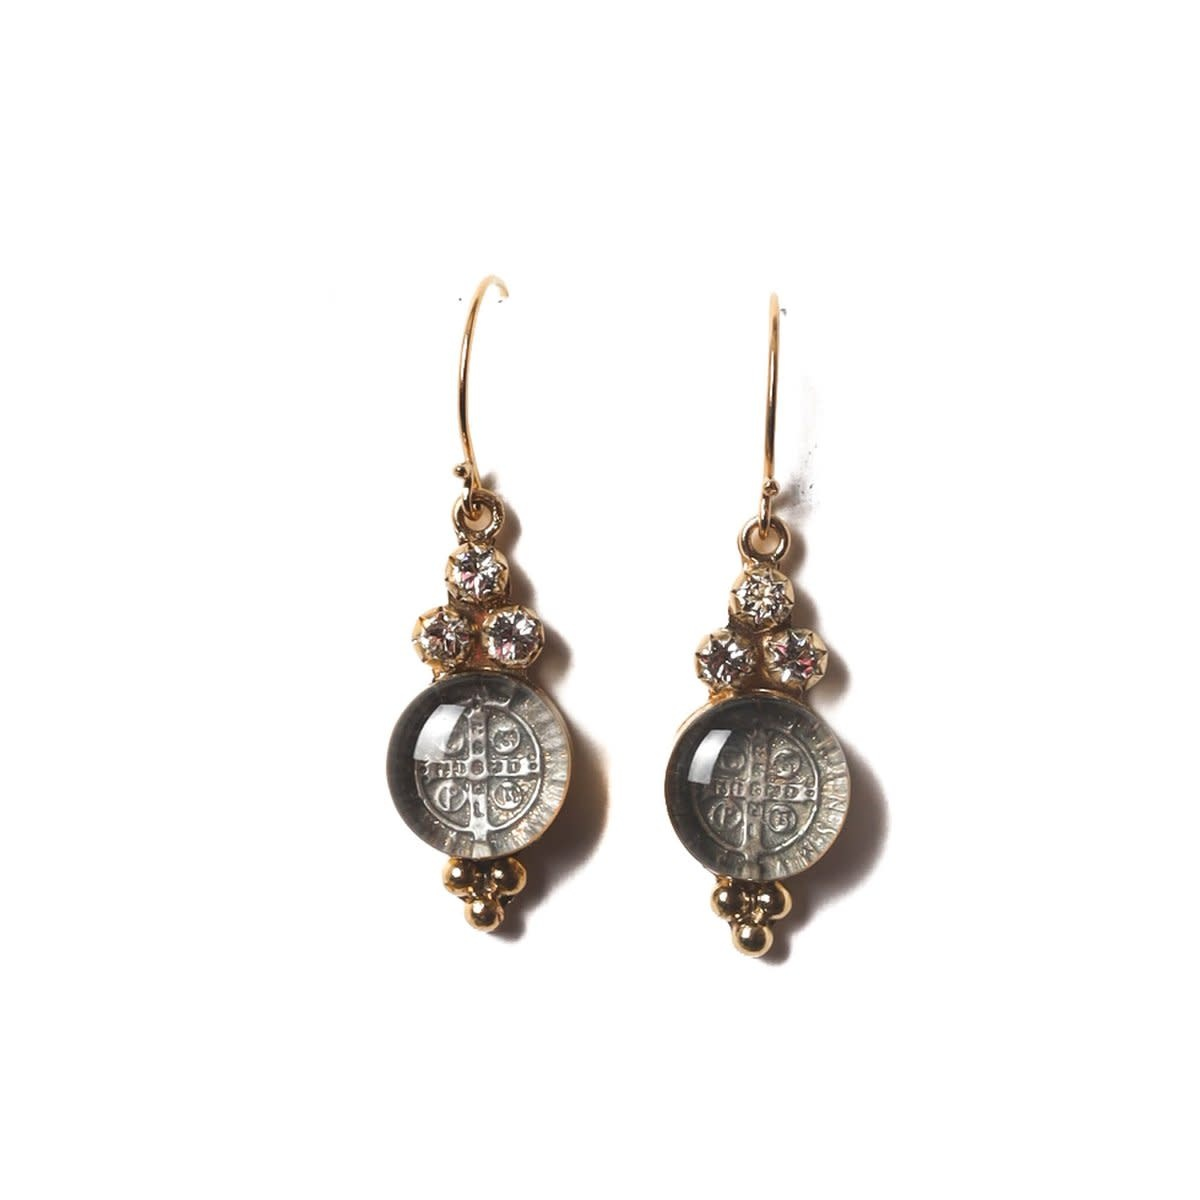 VSA Designs Lucia San Benito Sterling Silver/Gold Vermeil Earrings